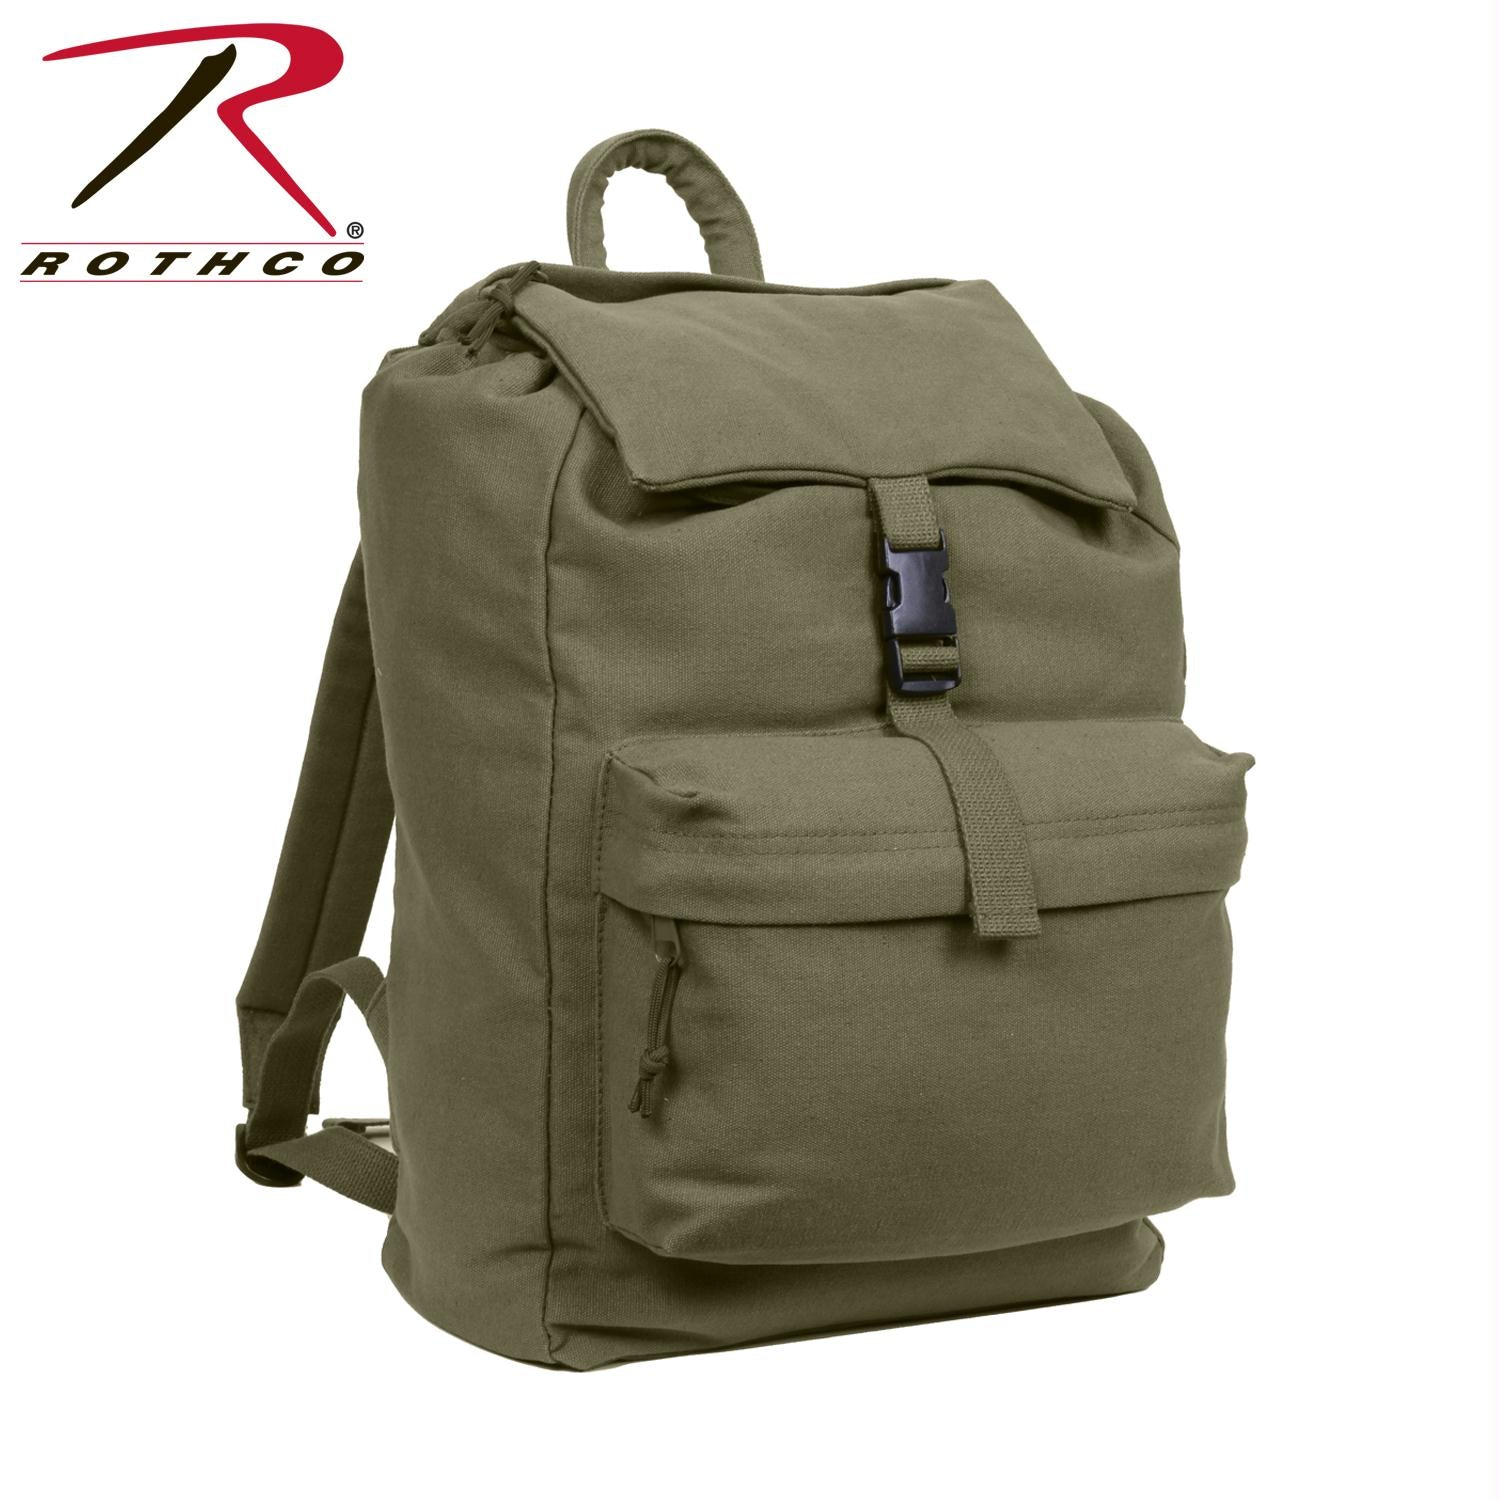 Rothco Canvas Daypack - Olive Drab